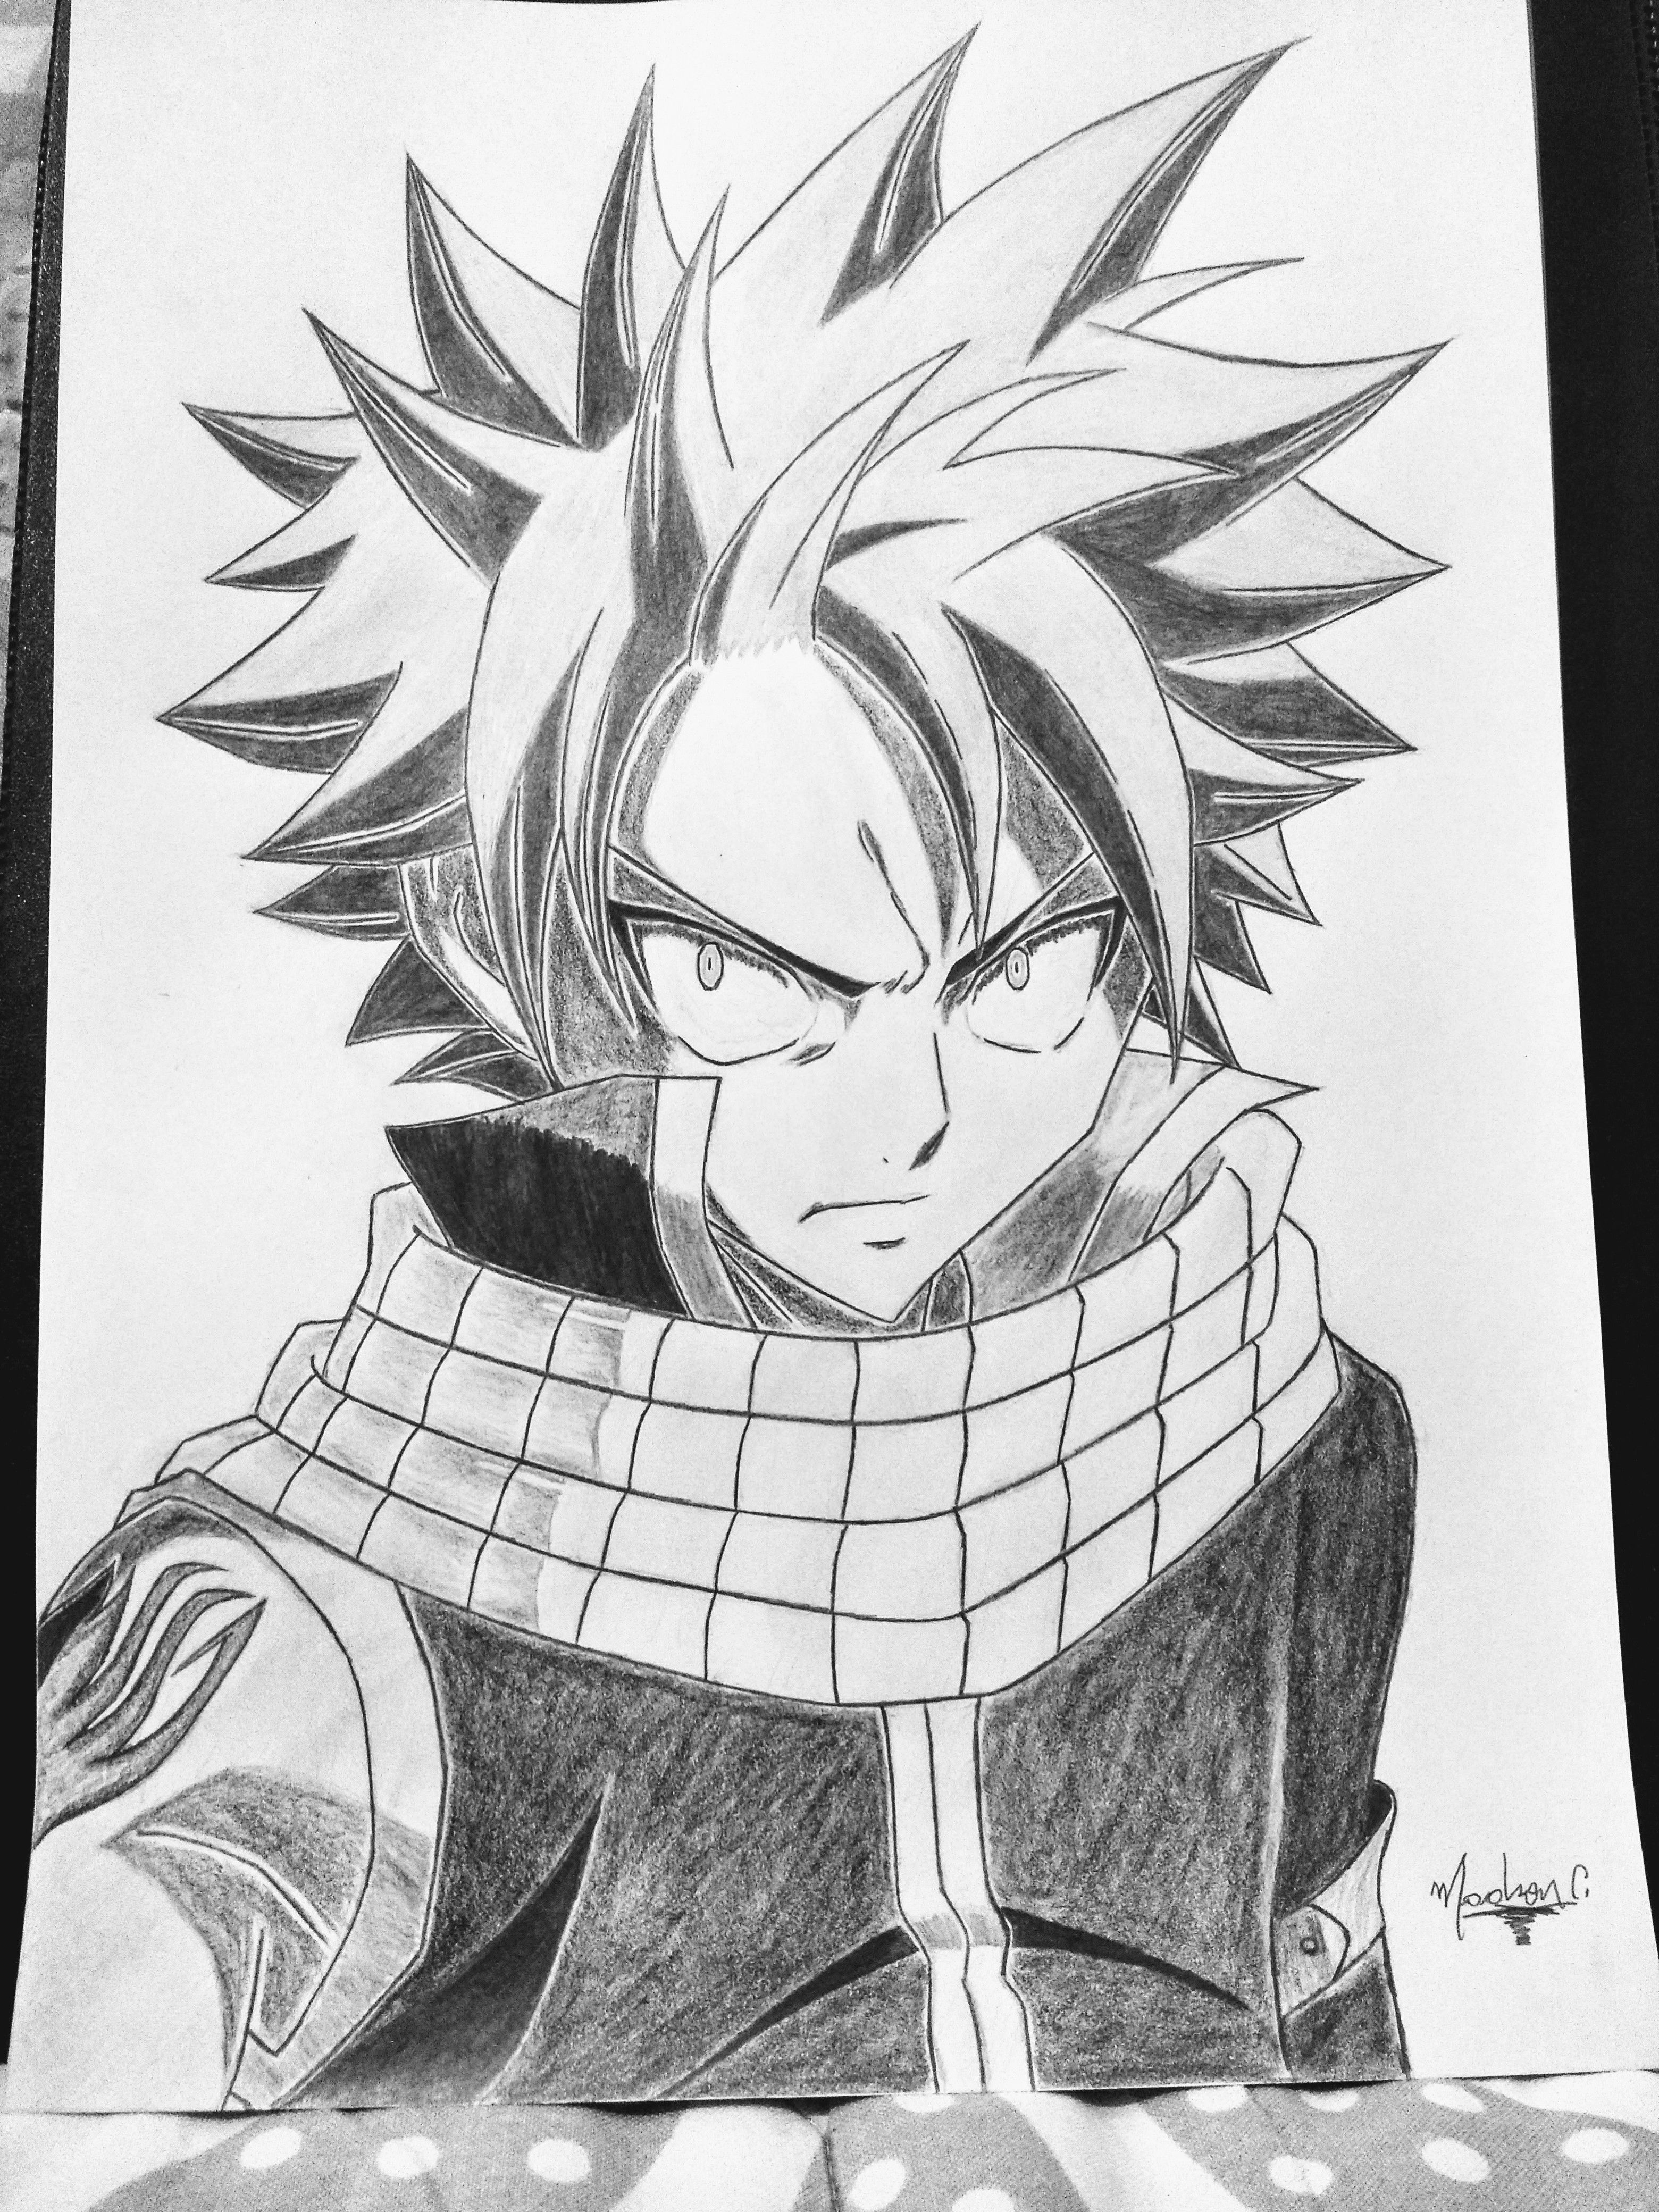 Natsu Dragneel From Fairy Tail Fairy Tail Anime Sketch Natsu